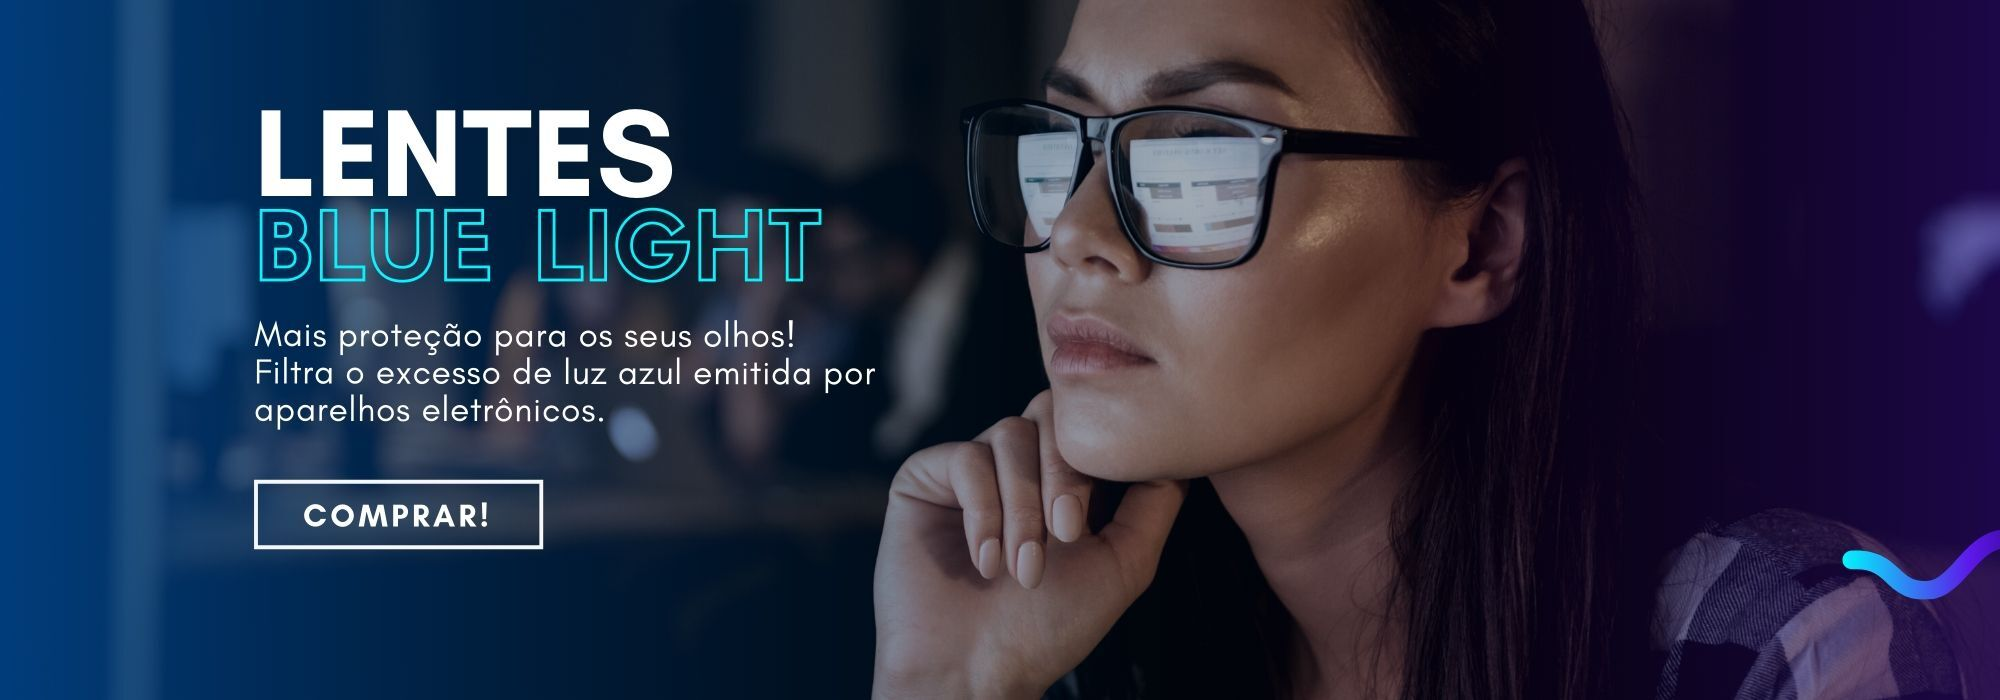 banner Lentes Blue Light